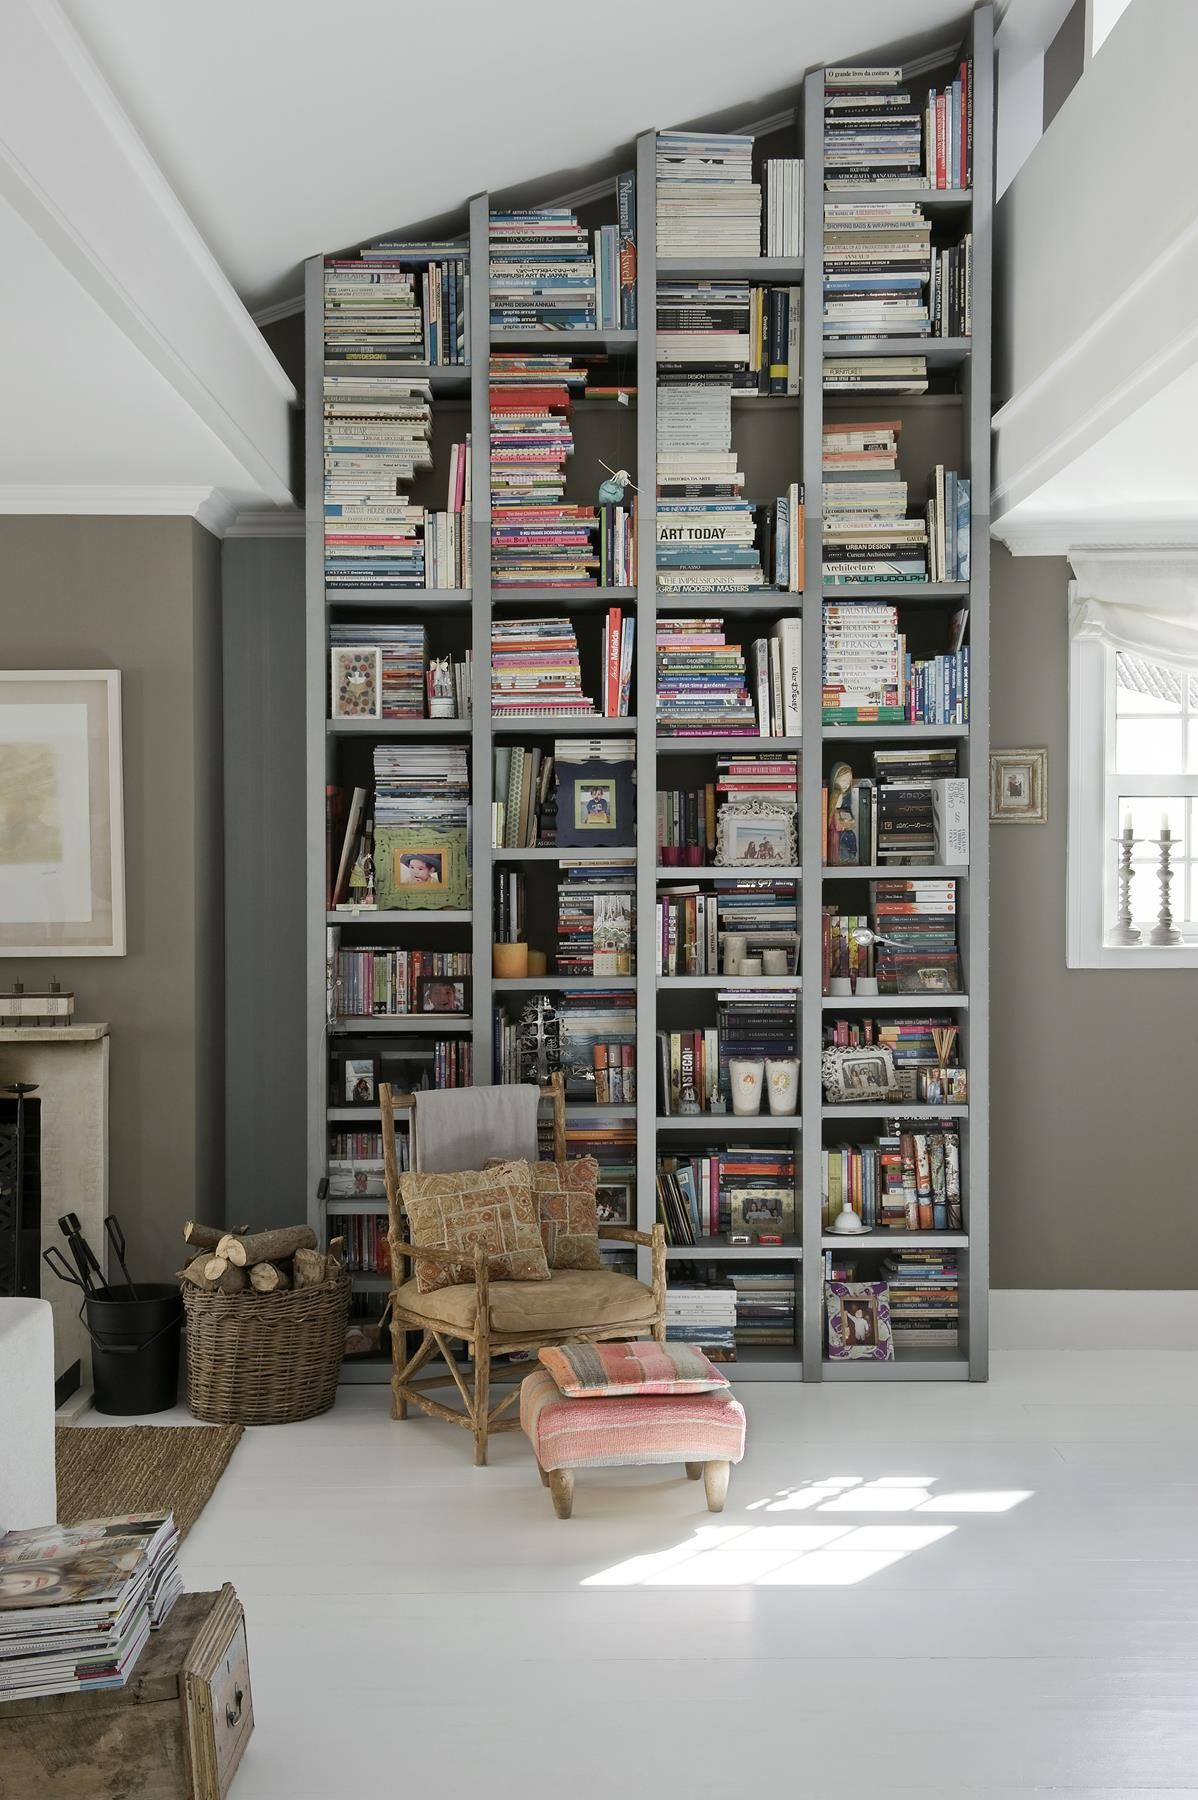 boo design invisible bookshelves of tv shelf uncategorized stand bookshelf full size low vertical ptolomeo book within metal bookcase tower sapien riveting stak modern il designer reach s knockoff white spine